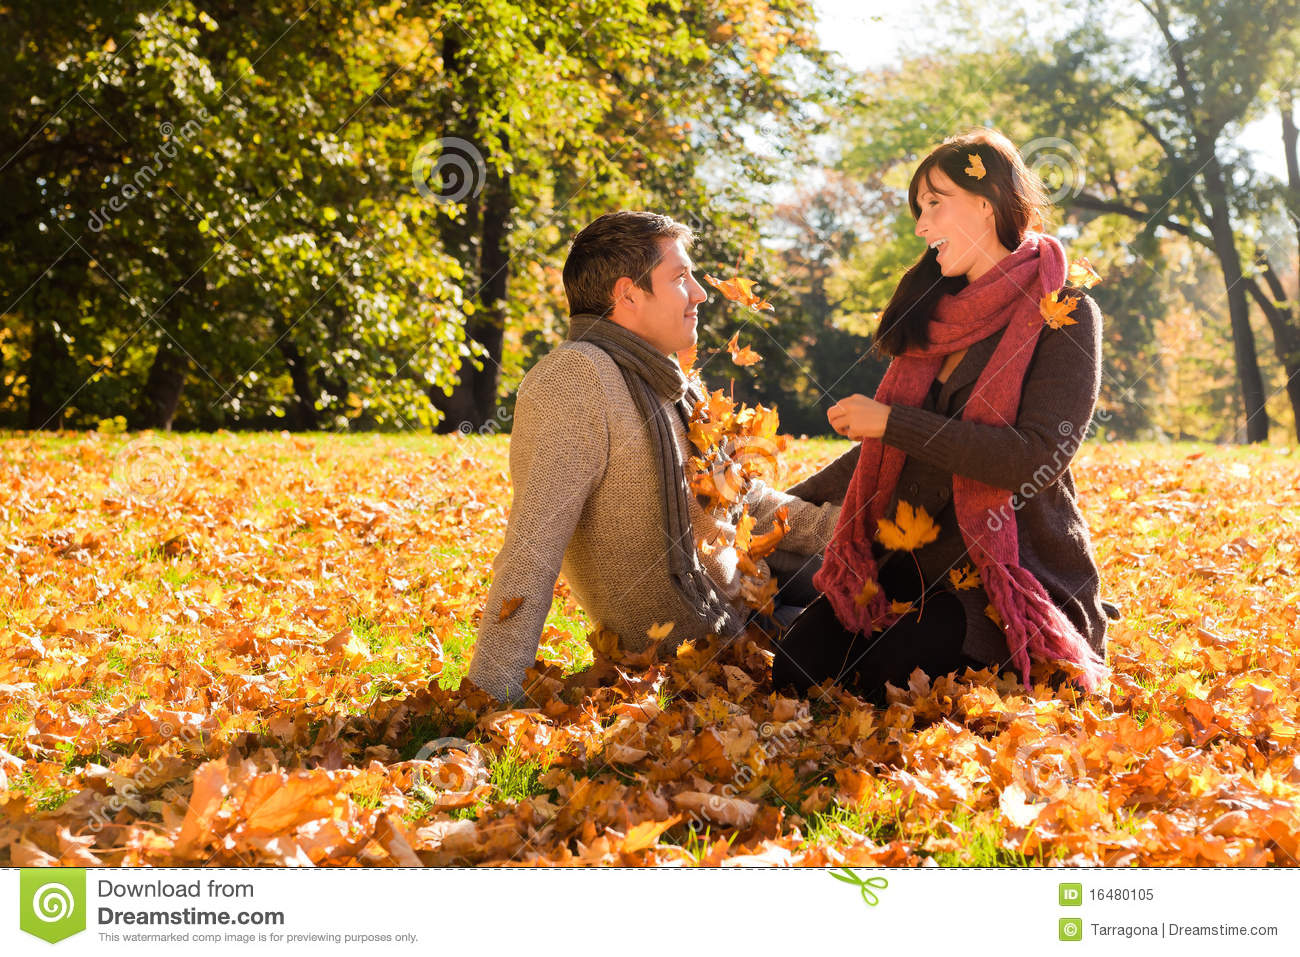 Fall Woods Wallpaper Autumn Couple Stock Image Image Of Leaf Outdoor